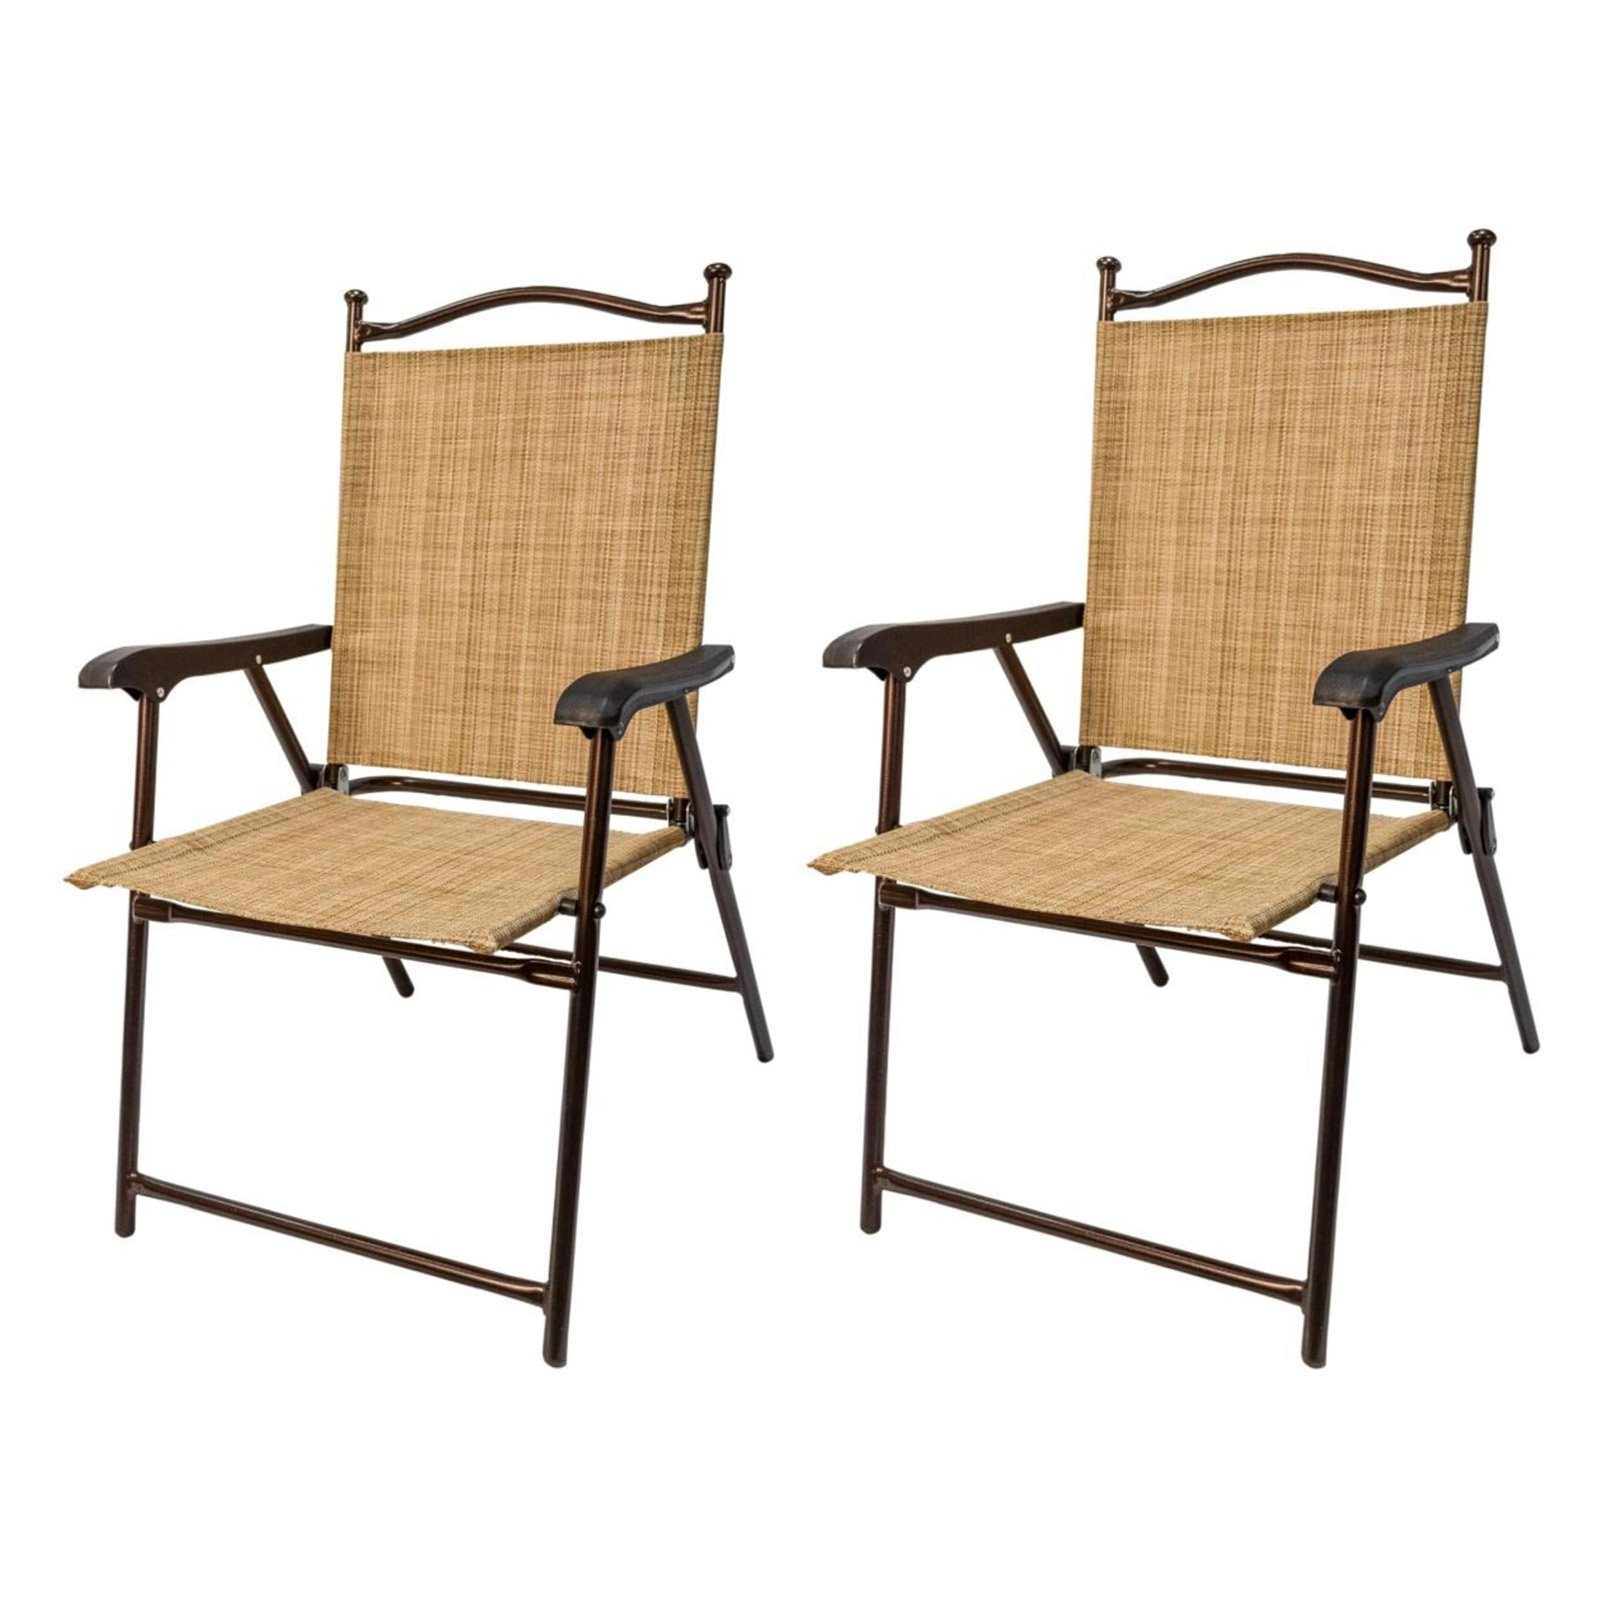 outdoor sling chairs. Outdoor Sling Chairs S